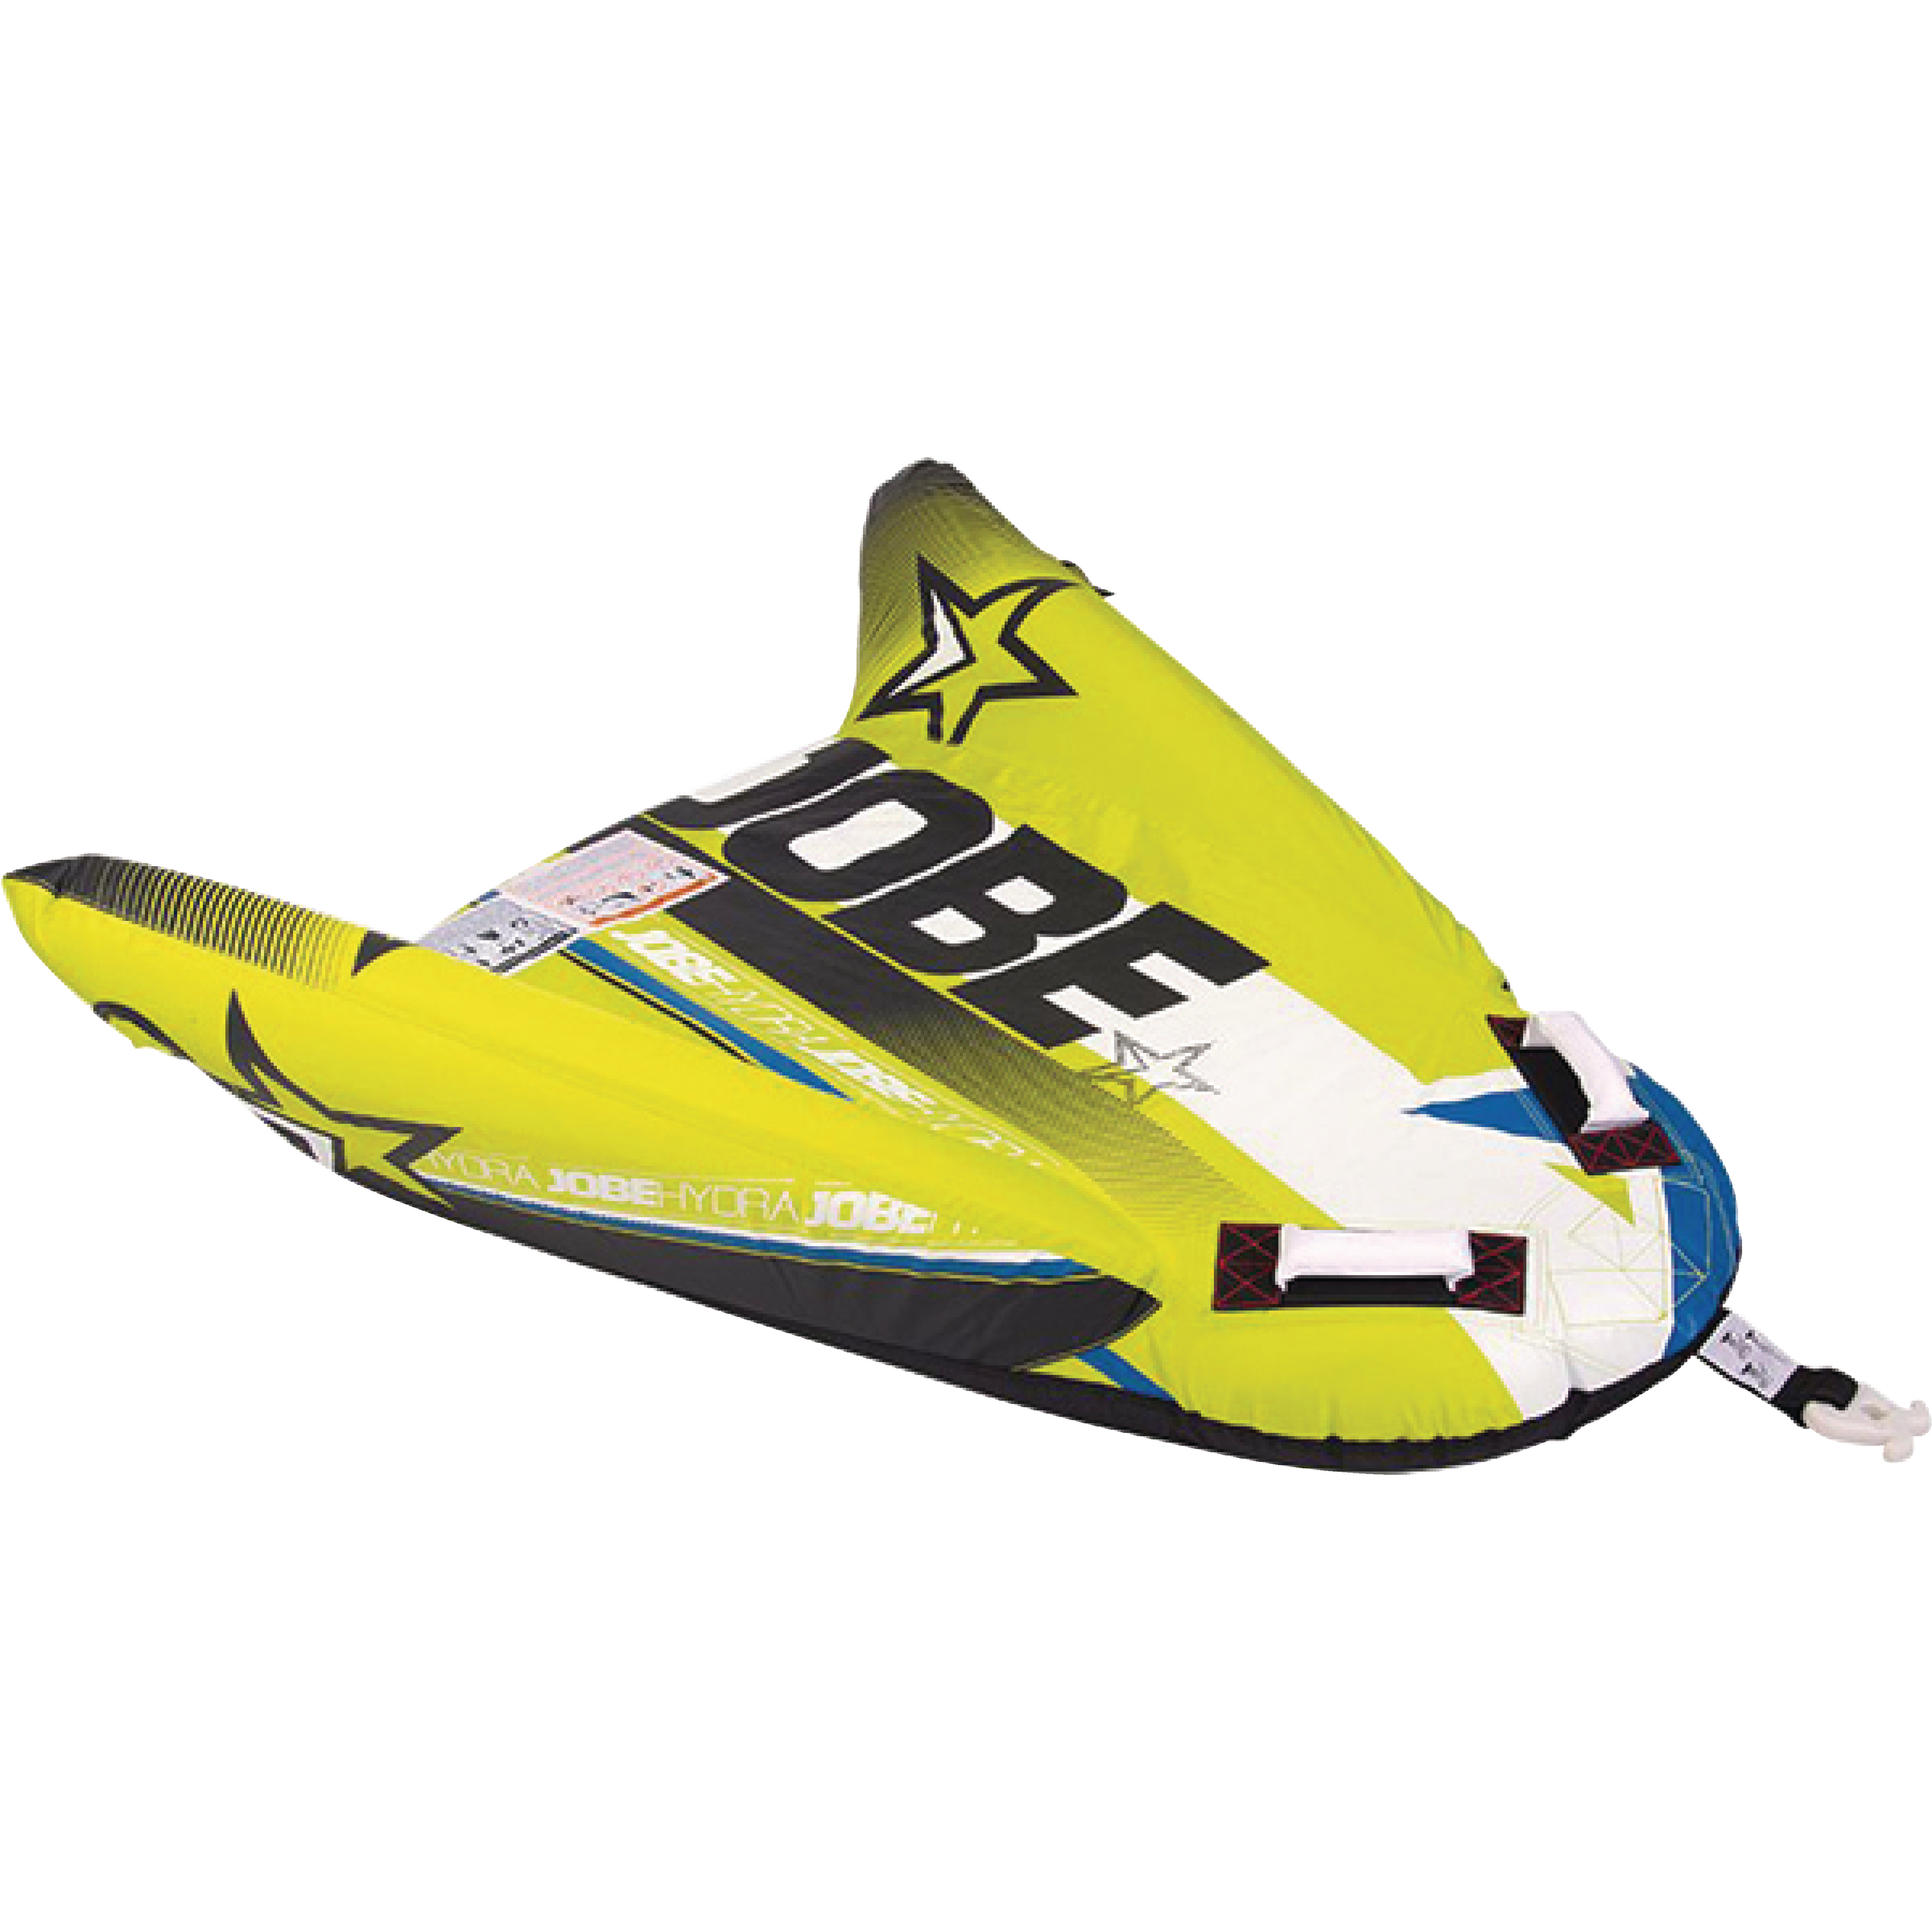 Jobe 230115002 Hydra Yellow 1 Rider Inflatable Winged Towable